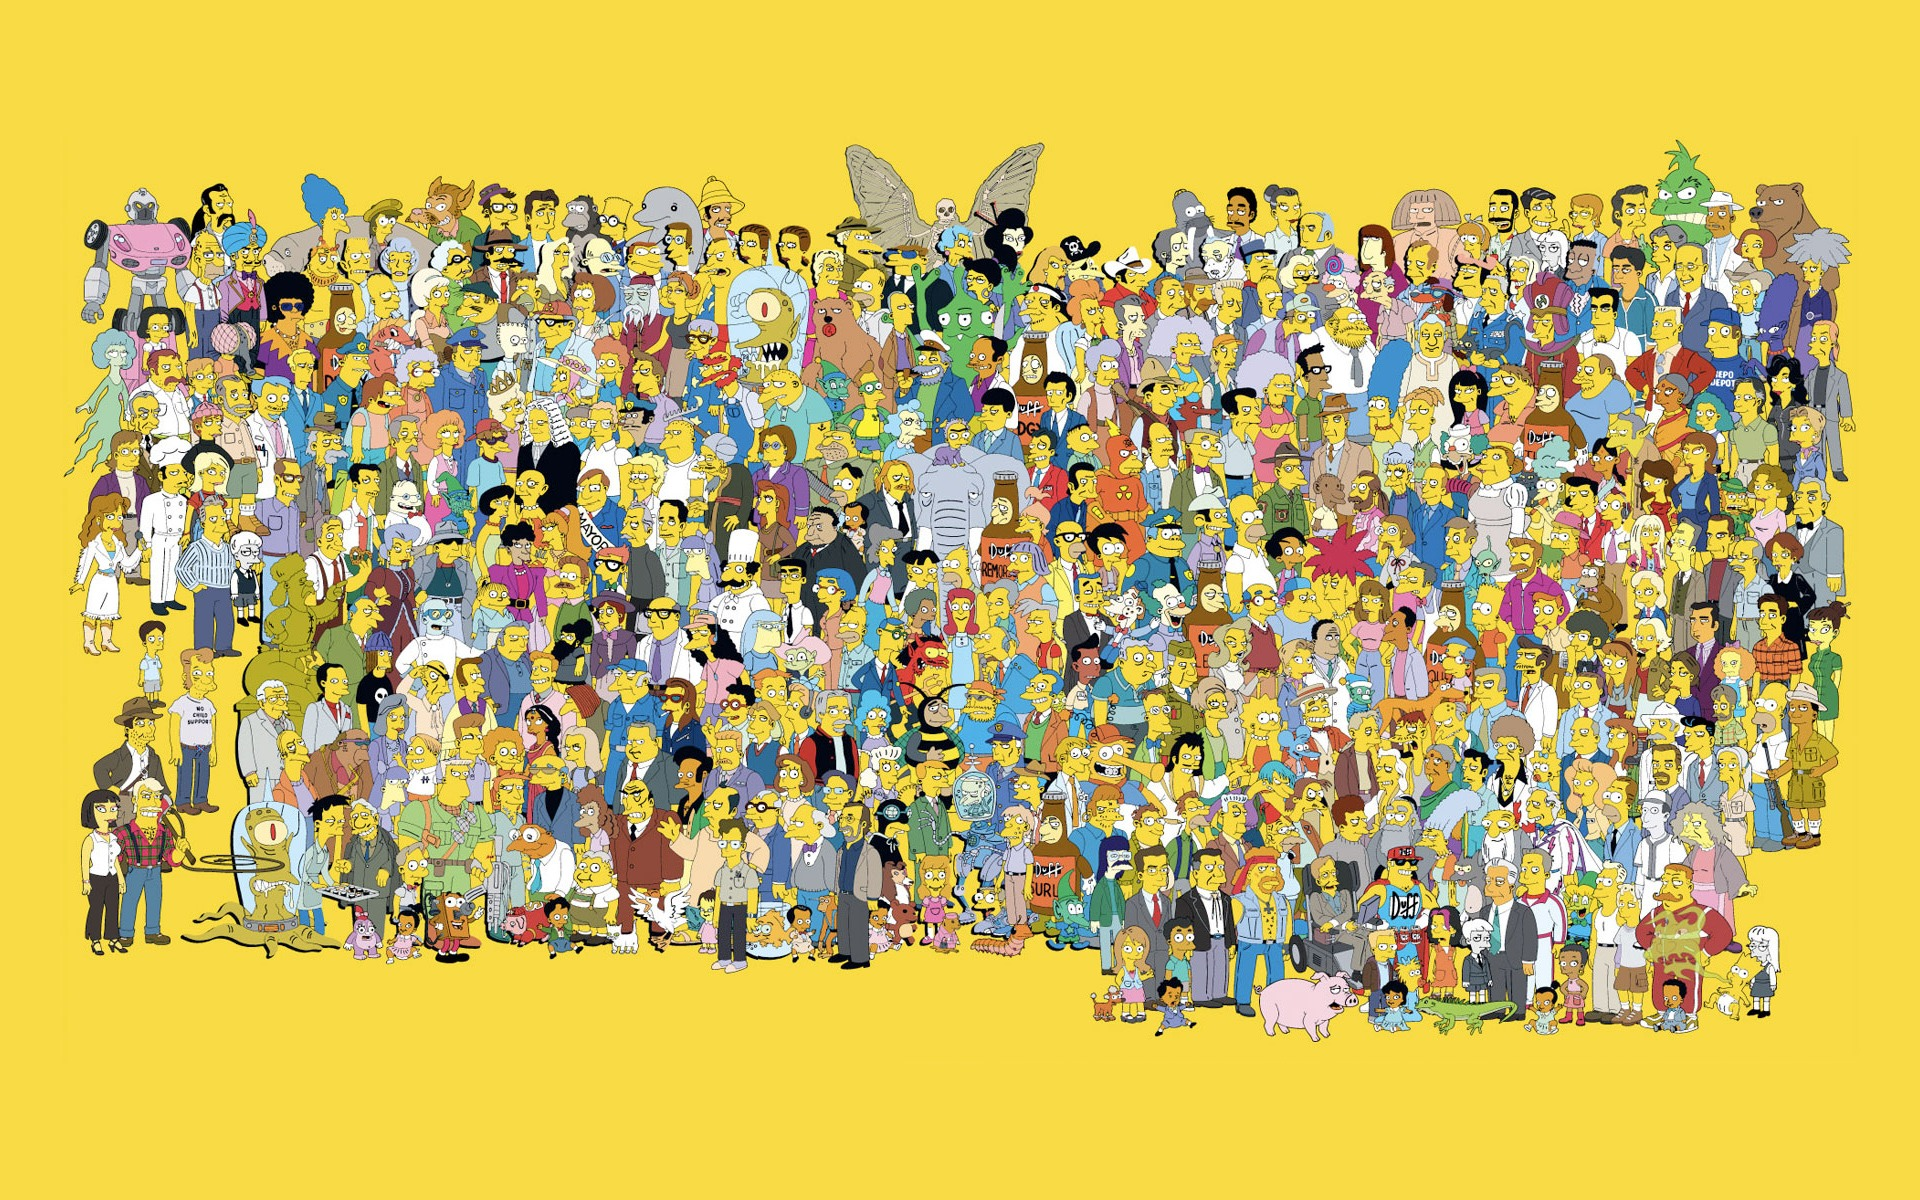 wallpapers dibujos simpsons aniversario simpson fondo 1920x1200